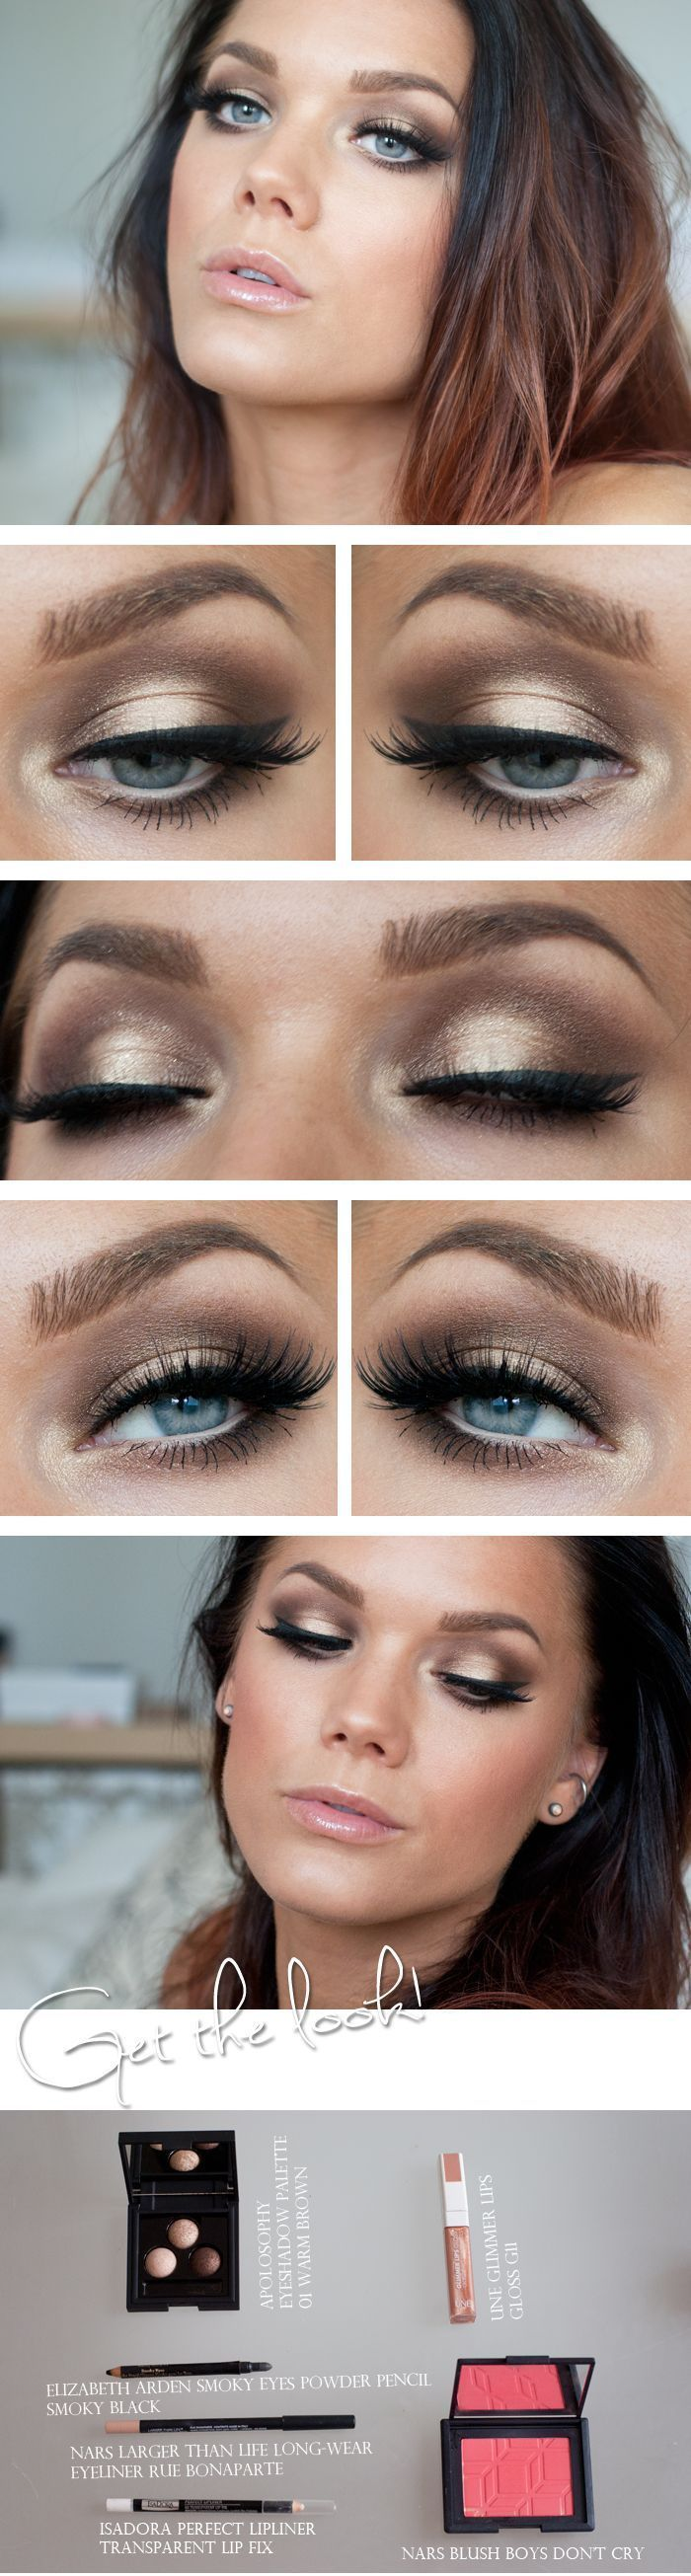 Gold Smoky Eye Tutorial                                                                                                                                                                                 More